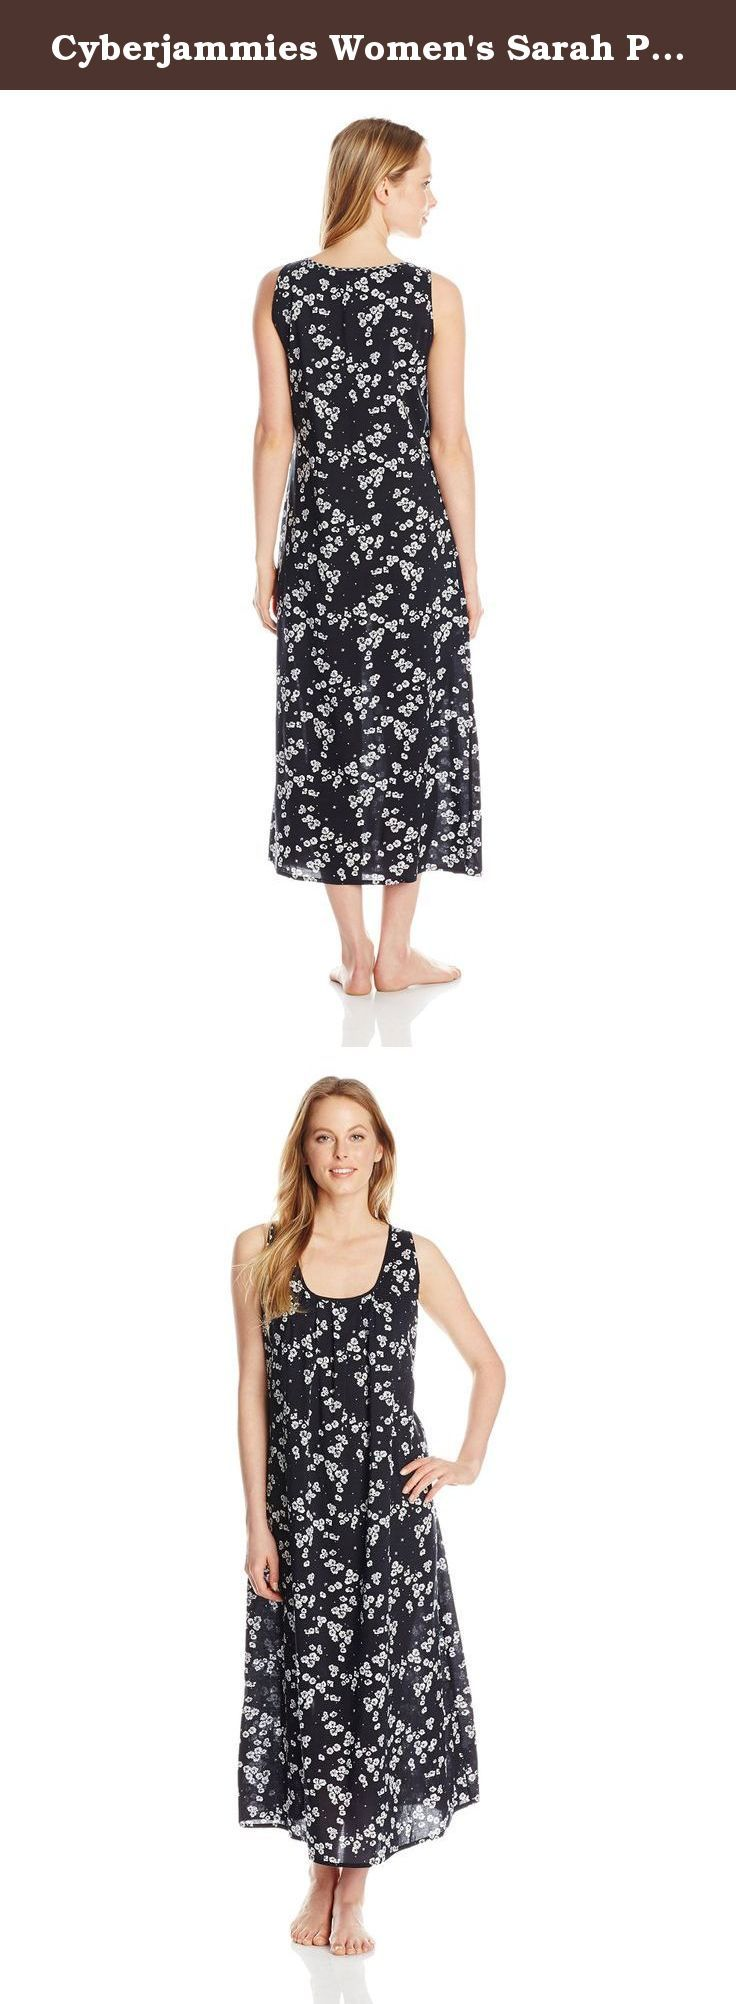 Cyberjammies Women's Sarah Printed Long Nightdress, Black Mix, 10/Medium. Cyberjammies offer exceptional quality nightwear and lounge wear, too good to sleep in. Our fabrics are extra soft and specifically designed for comfort in bed. Our colors, trims and styling are fun and different. Fit is comfortable, yet feminine to ensure you look stylish in the bedroom or on the sofa.